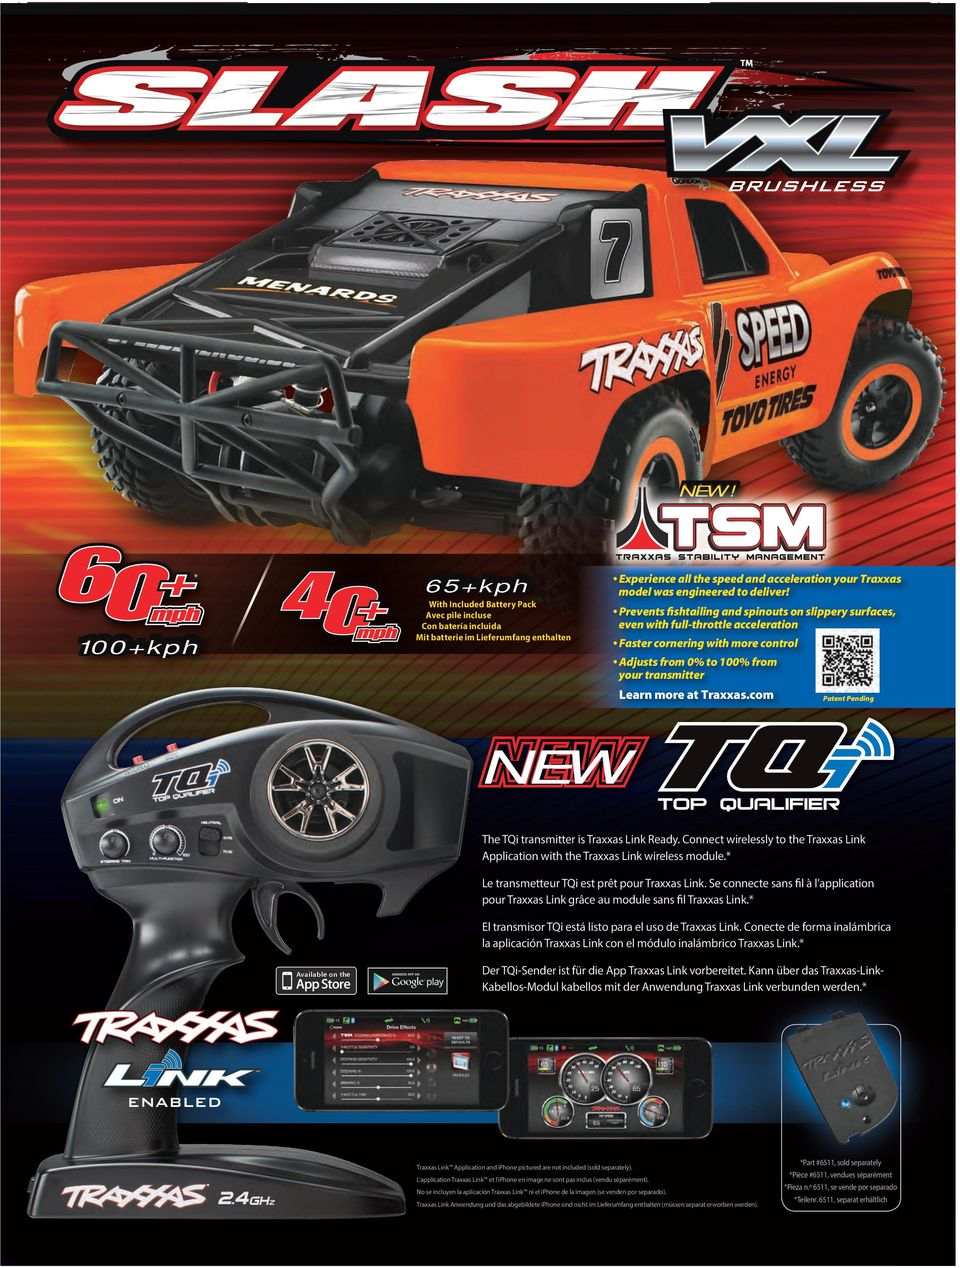 com Patent Pending The TQi transmitter is Traxxas Link Ready. Connect wirelessly to the Traxxas Link App Marketing and Identity Application with the Traxxas Link wireless module.